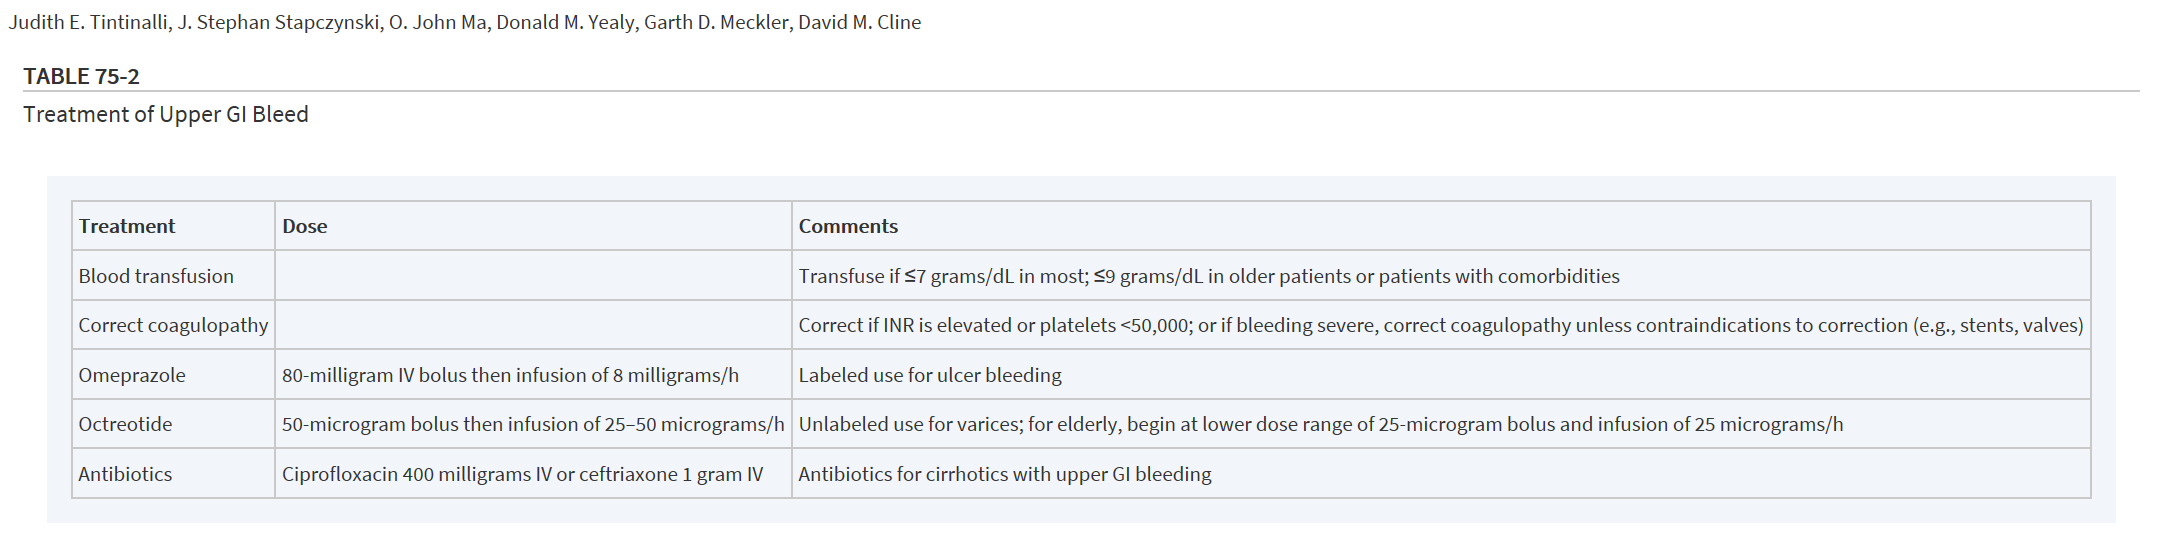 A restrictive transfusion threshold using hemoglobin concentrations of <7 grams/dL in most patients and <9 grams/dL in older patients with comorbidities who are not tolerating the acute anemia is recommended. 5 , 31   Patients with cirrhosis have an impaired immune system and have an increased risk of gut bacterial translocation during an acute bleeding episode. Prophylactic antibiotics (e.g.,  ciprofloxacin  400 milligrams IV or ceftriaxone 1 gram IV) reduce infectious complications, rebleeding, days of hospitalization, mortality from bacterial infections, and all-cause mortality, 42  and should be started as soon as possible. (Tintinalli 8th ed)